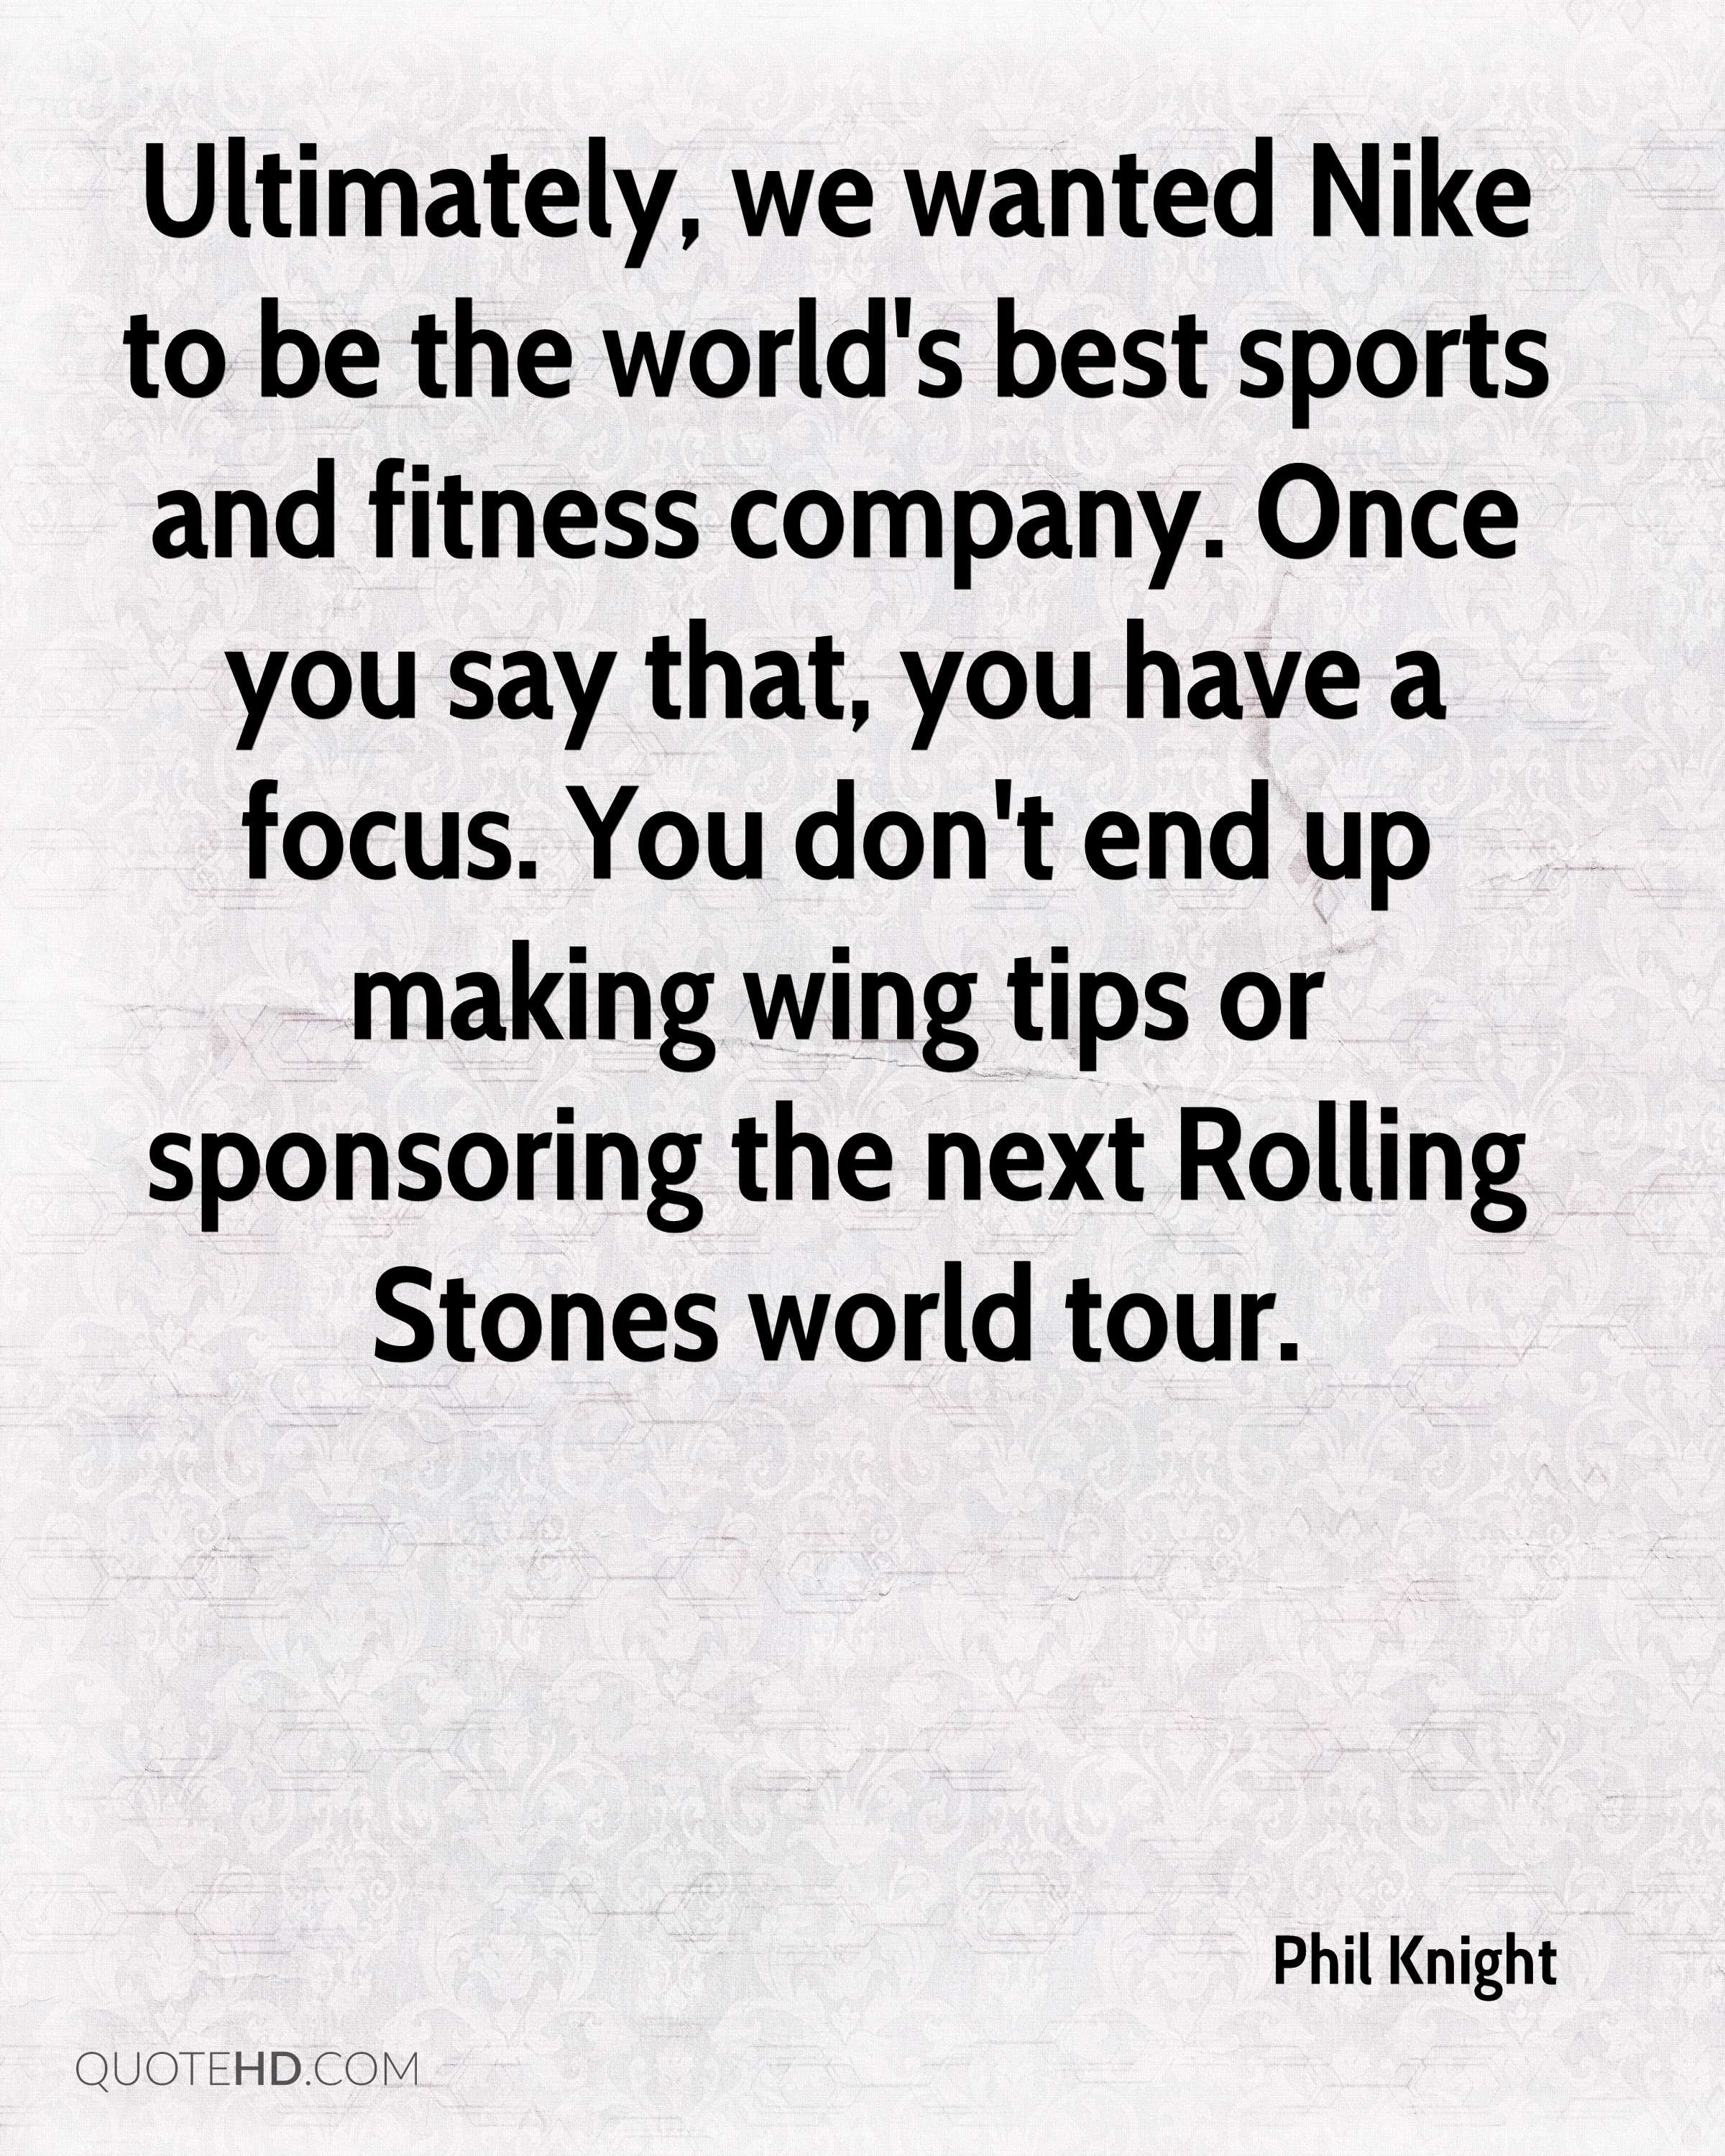 Ultimately, we wanted Nike to be the world's best sports and fitness company. Once you say that, you have a focus. You don't end up making wing tips or sponsoring the next Rolling Stones world tour.